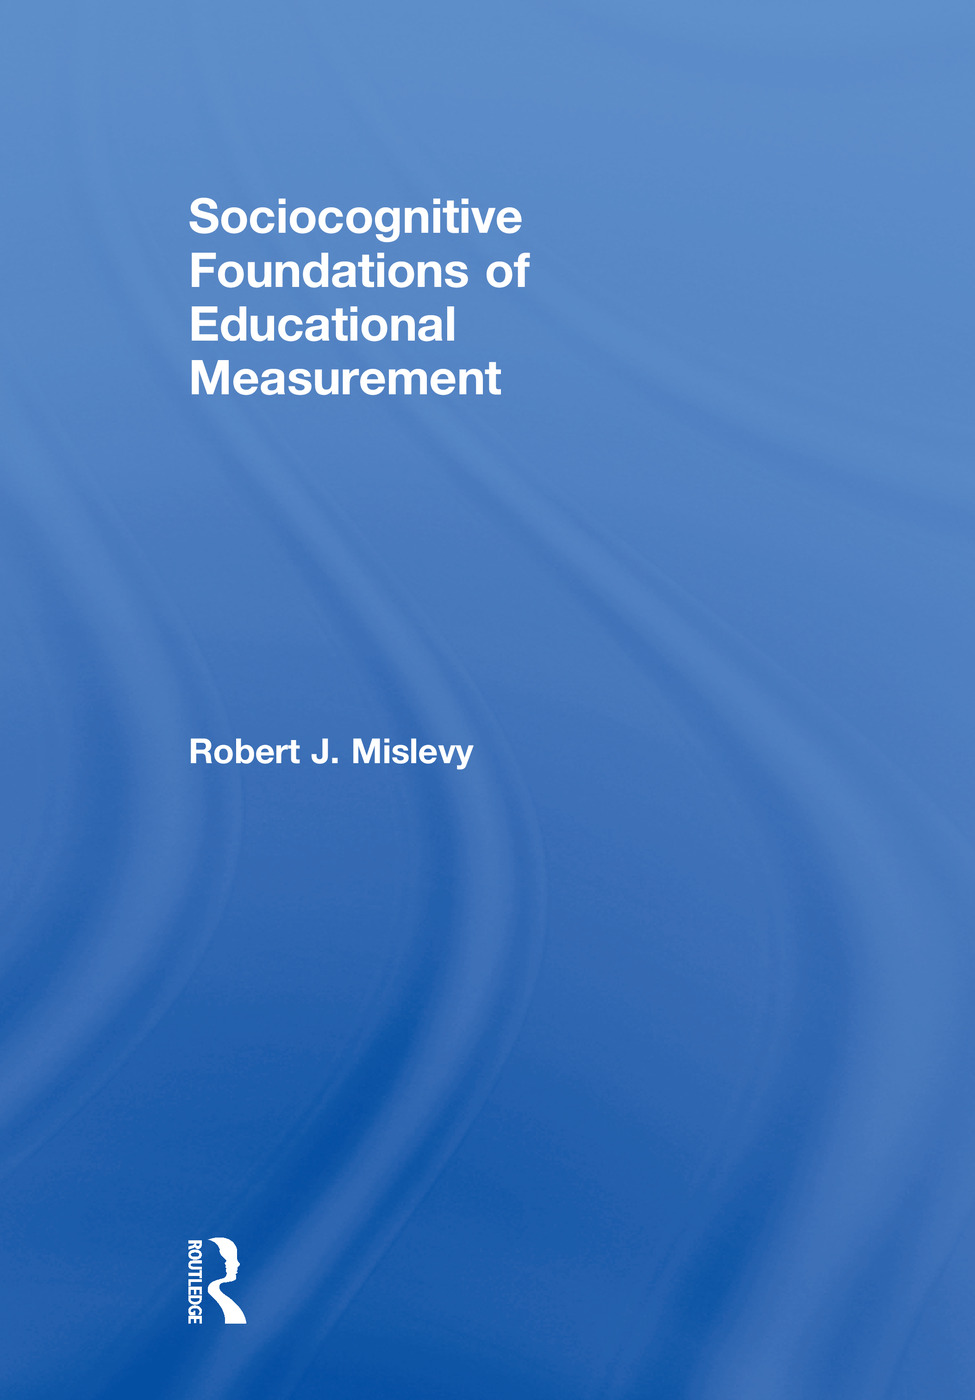 Sociocognitive Foundations of Educational Measurement book cover